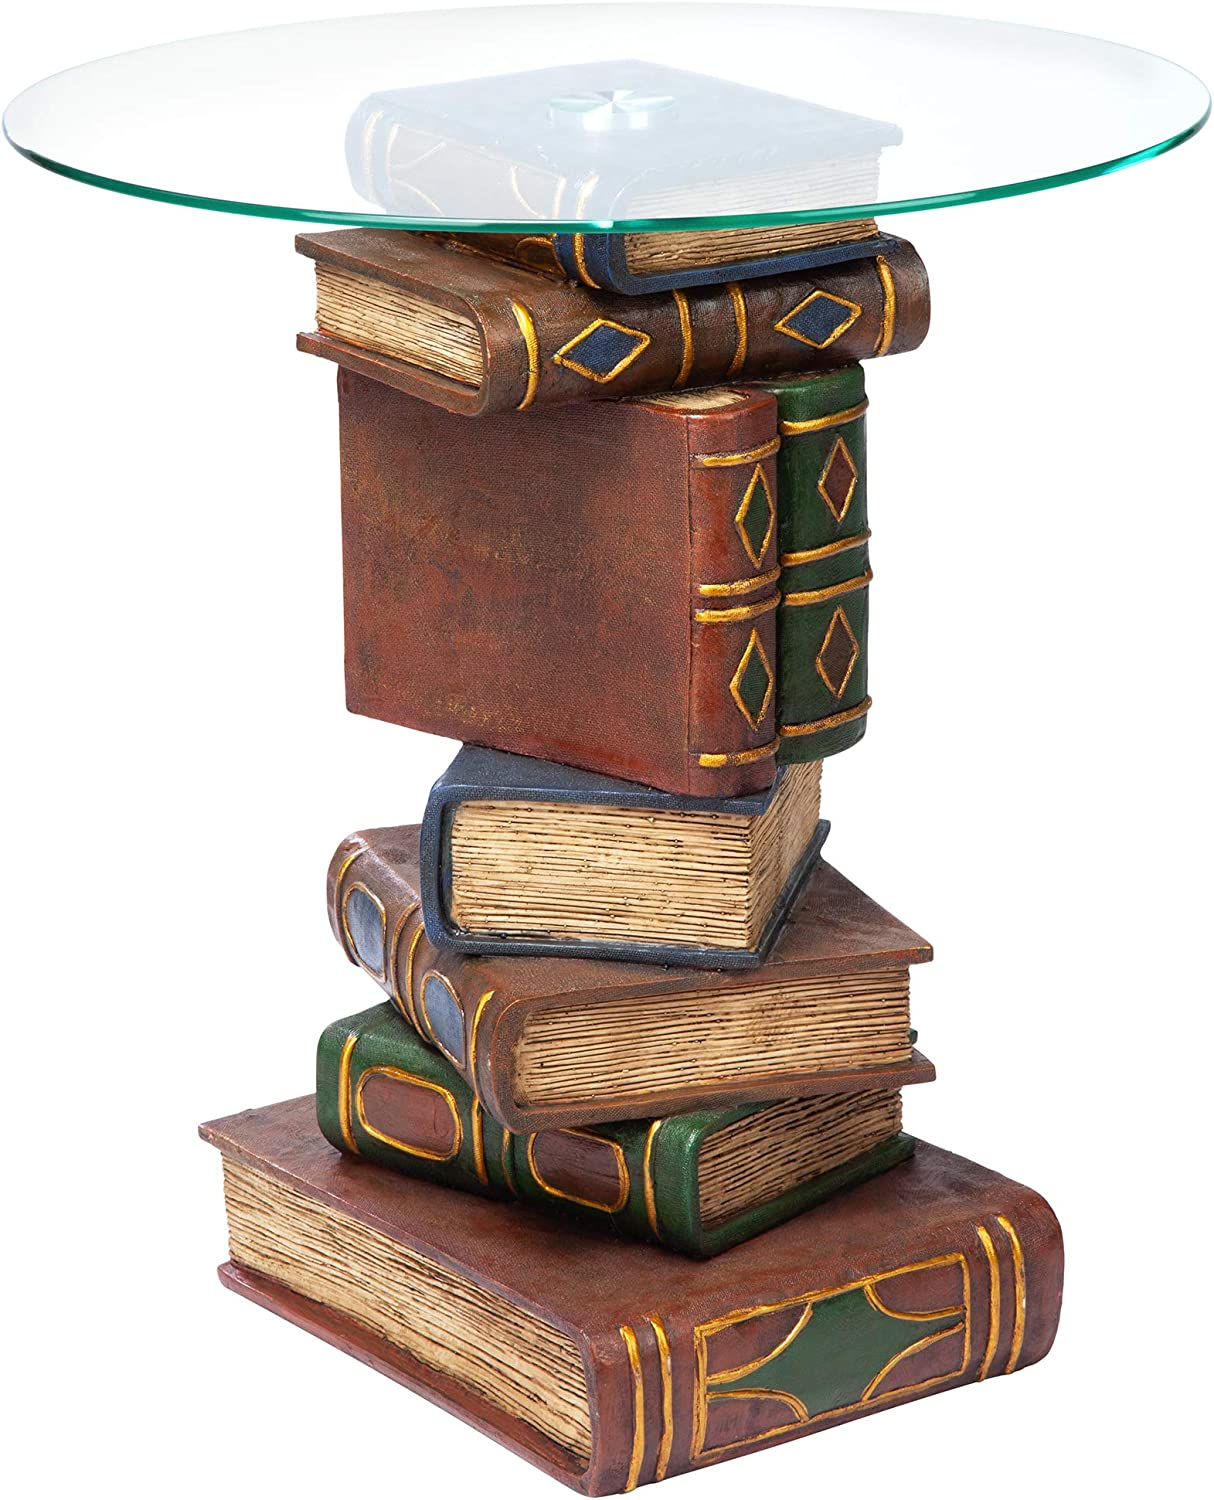 Design Toscano Stacked Book Volumes Decor Table Selling rankings with End Vintage Very popular